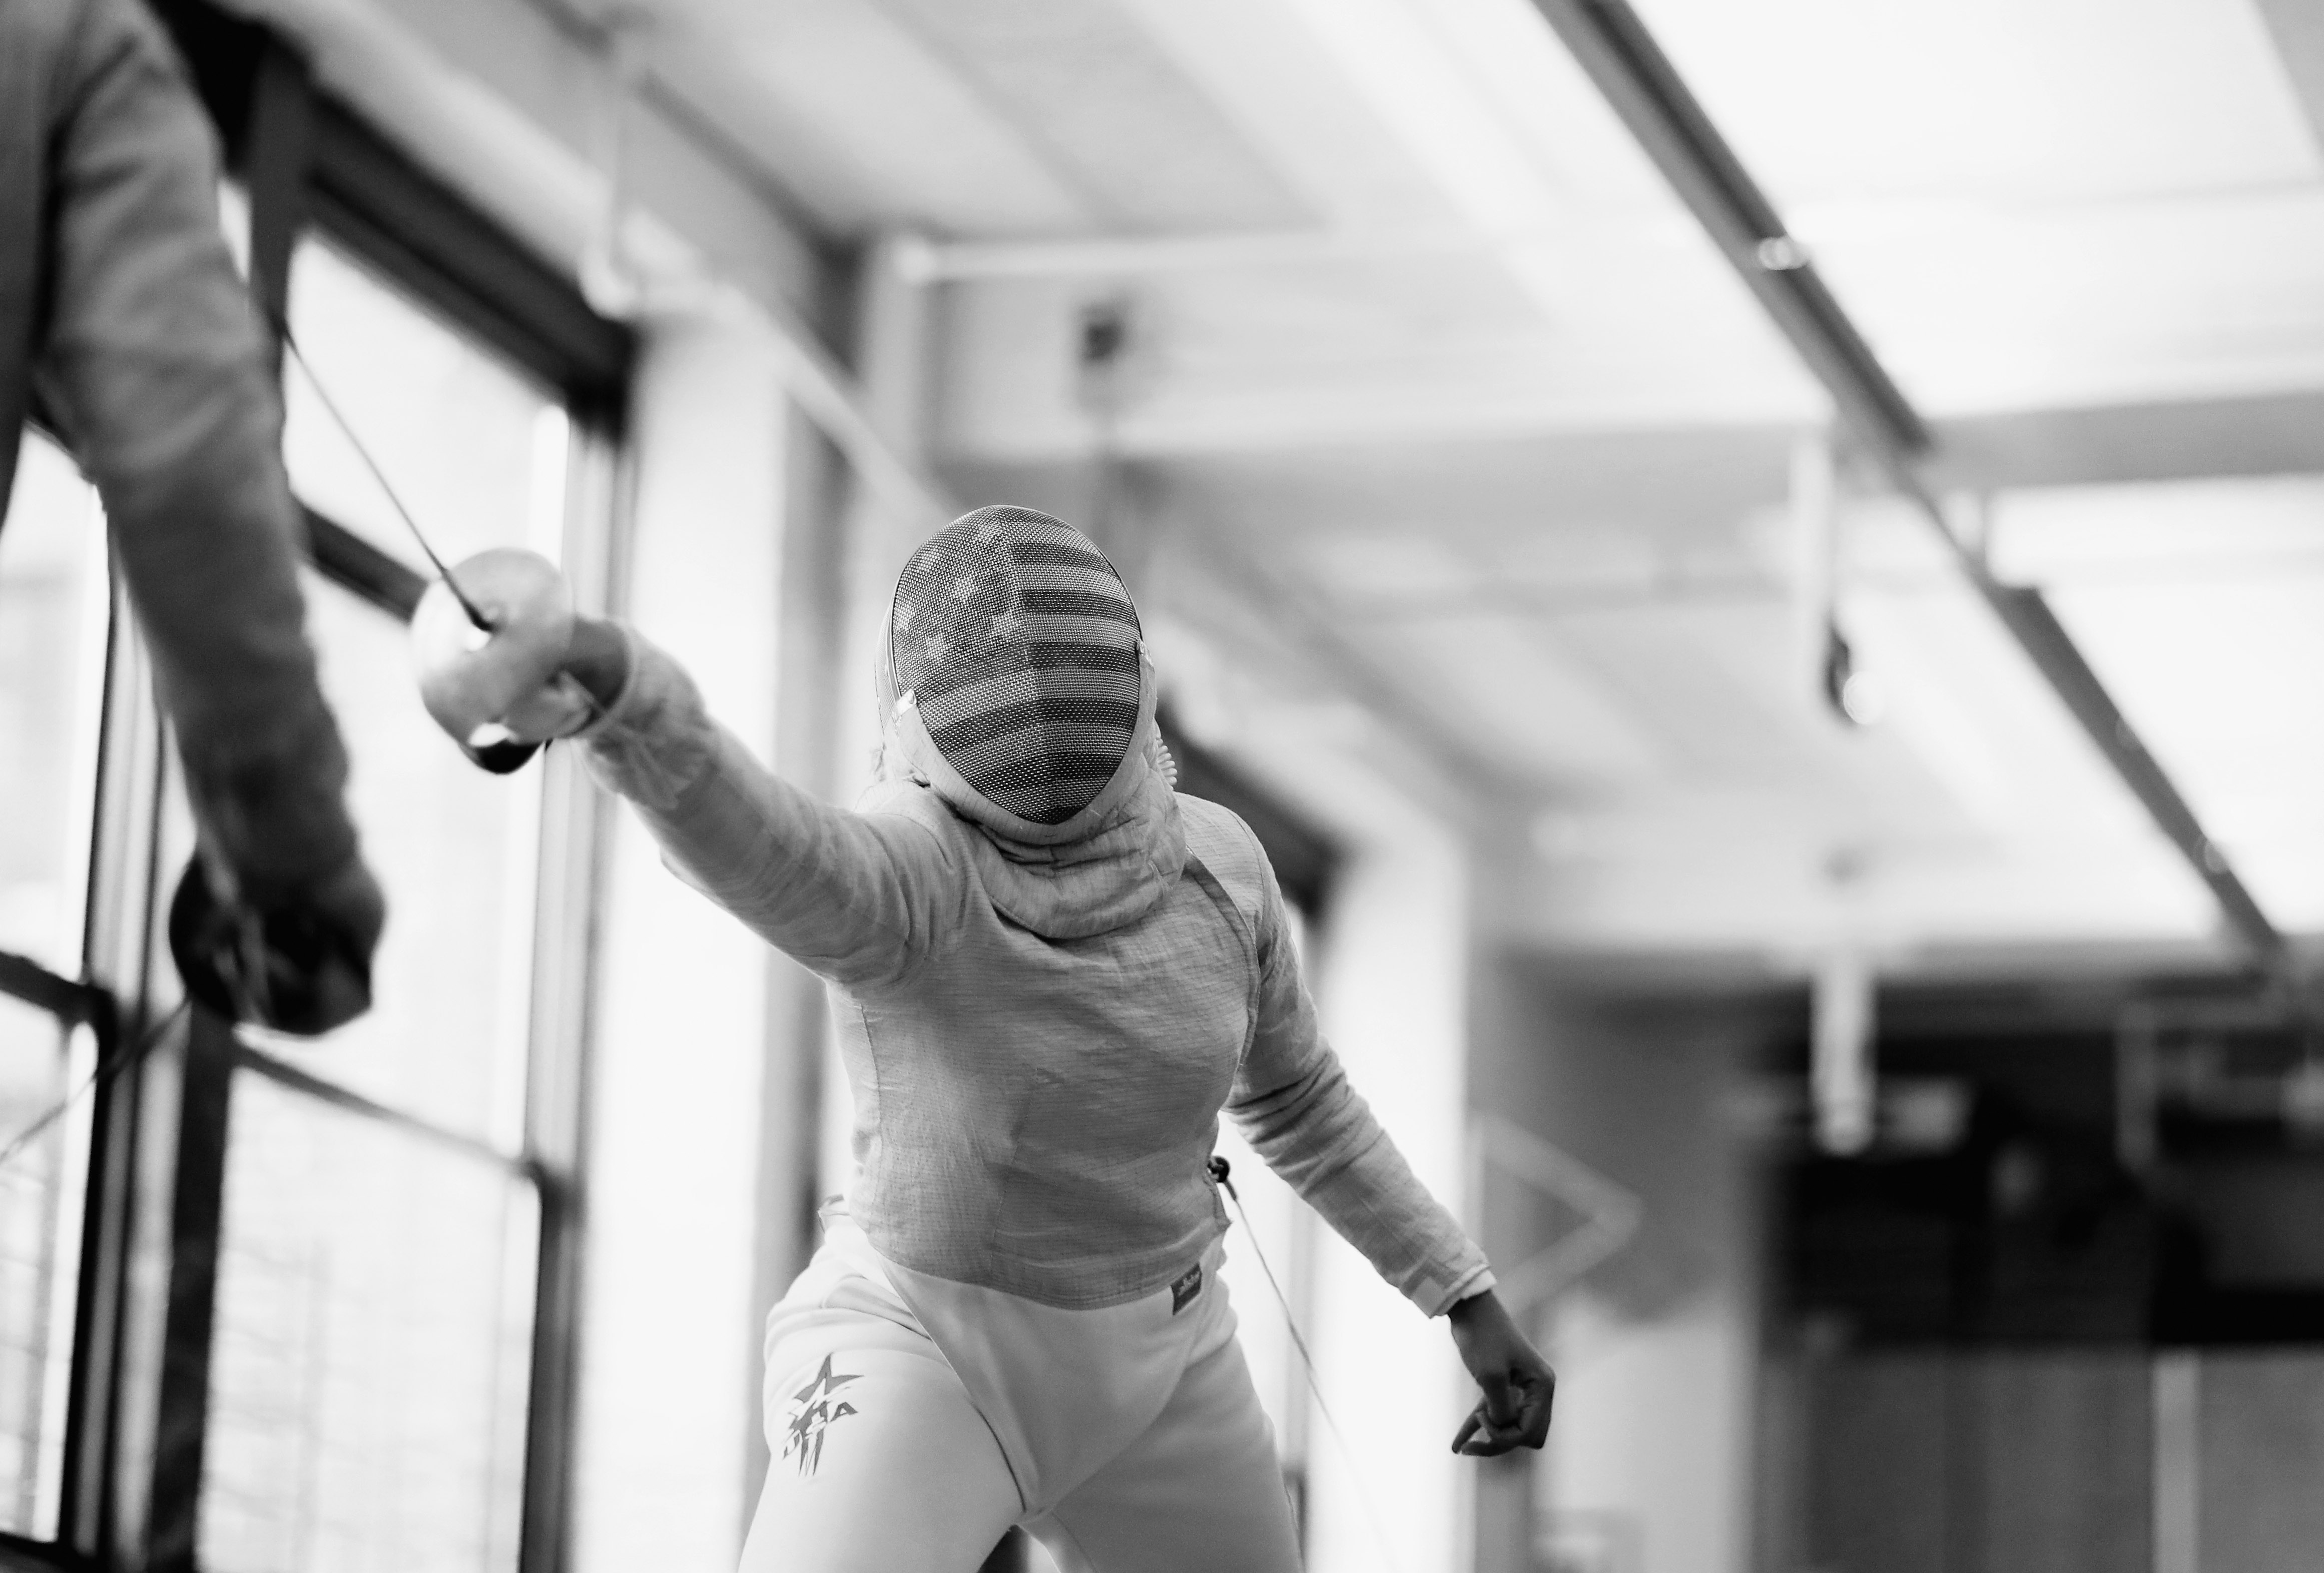 NEW YORK, NY - JULY 07: American Olympic fencer Ibtihaj Muhammad (right) practices with Liam Cotter during a training session at the Fencers Club on July 7, 2016 in New York City. Muhammad will be the first Muslim women to represent the United States while wearing a hijab at the 2016 Rio Olympic Games. (Photo by Ezra Shaw/Getty Images)